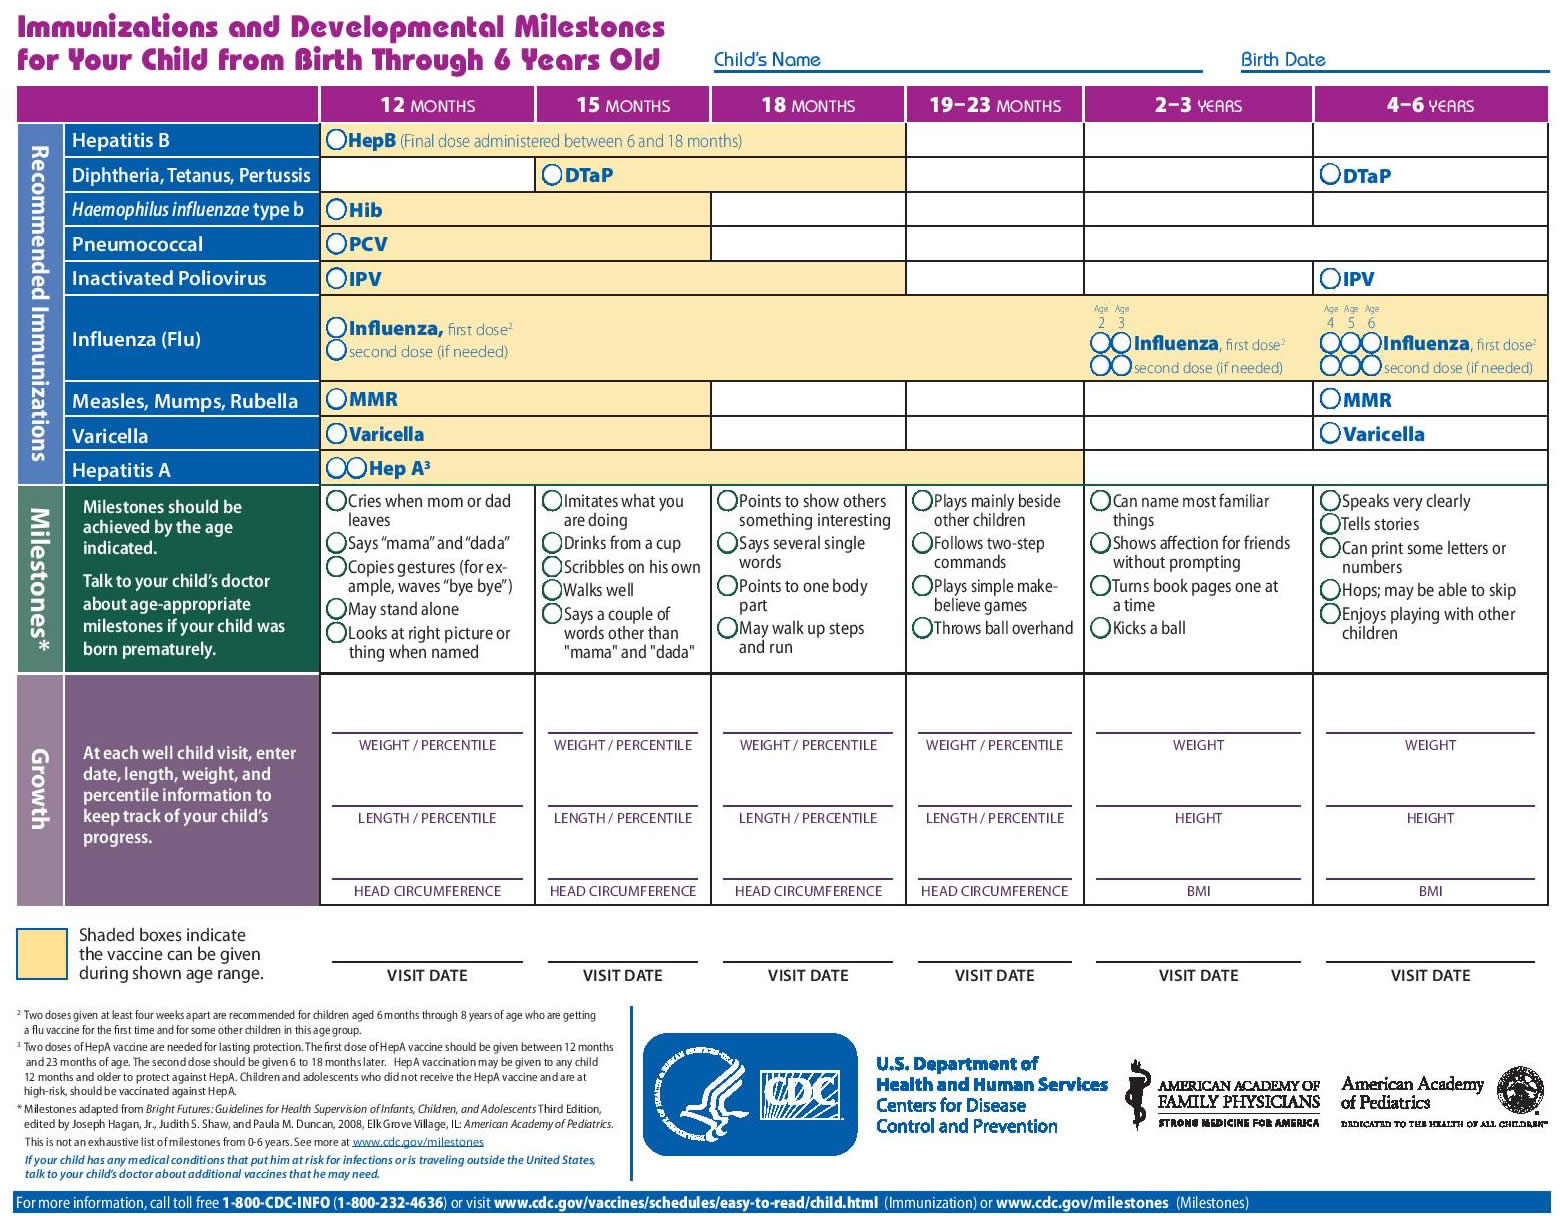 Centers for Disease Control and Prevention - Immunization Tracker